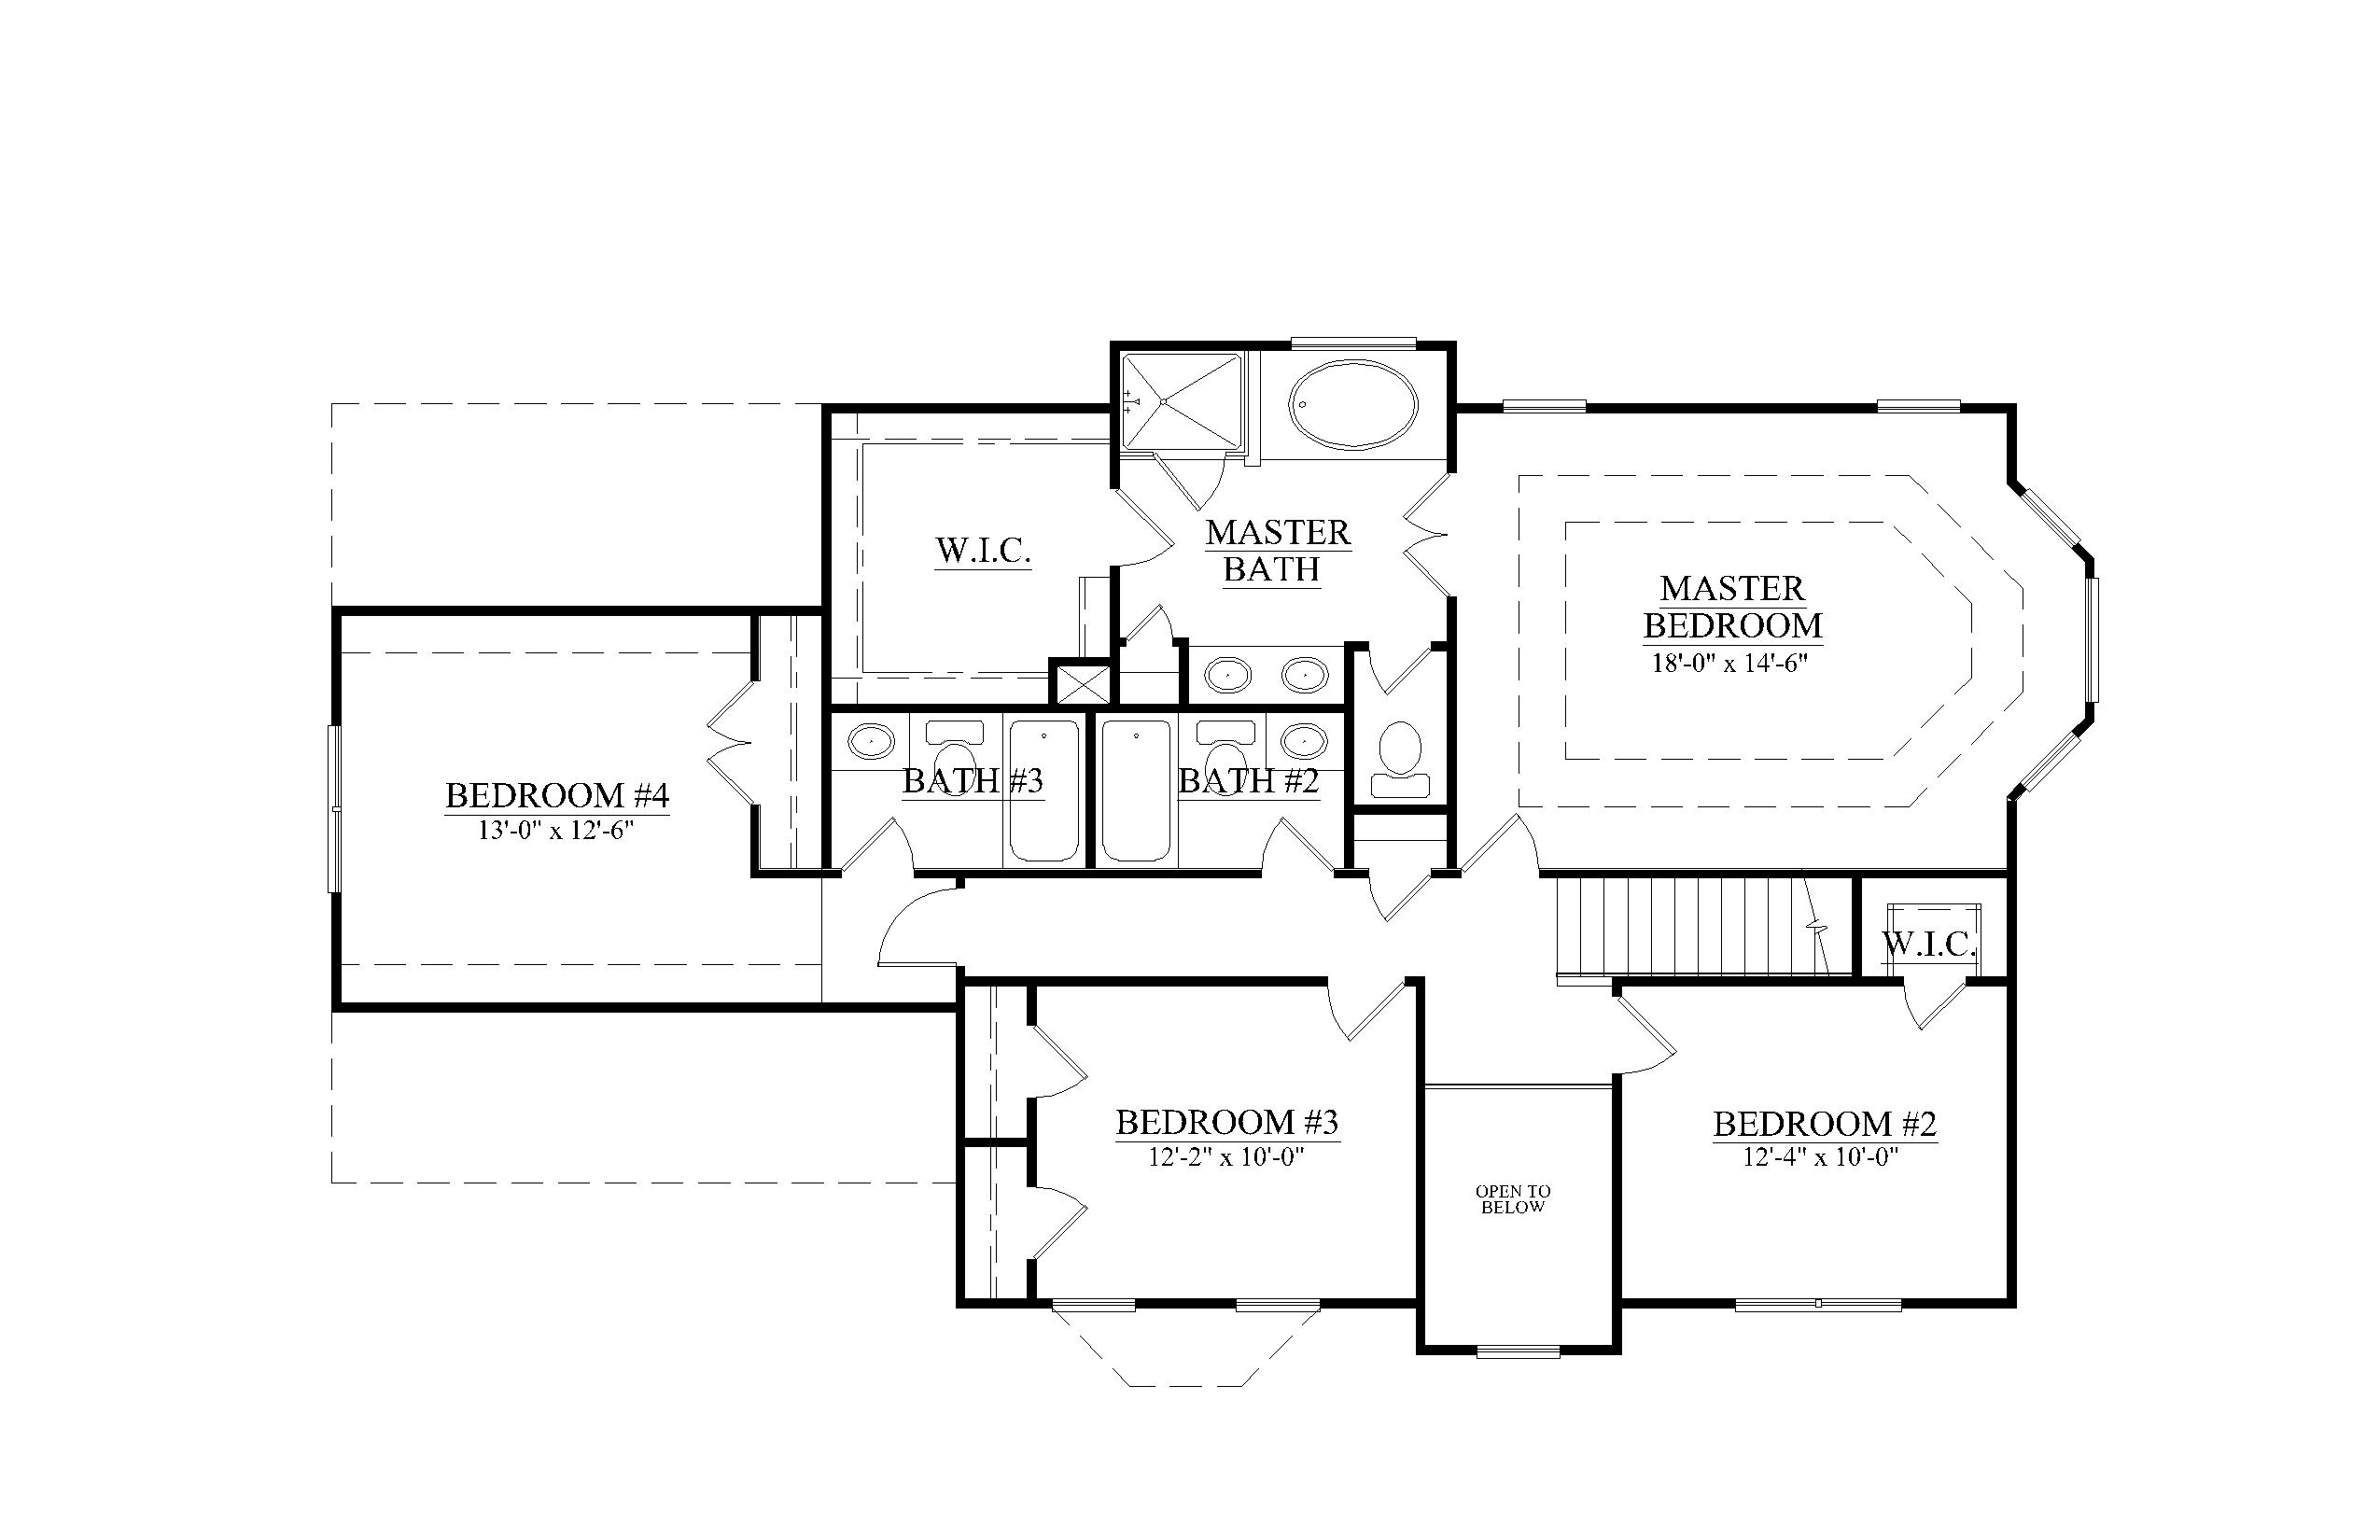 House plans 4500 5500 sq ft 4500 sq ft house plans